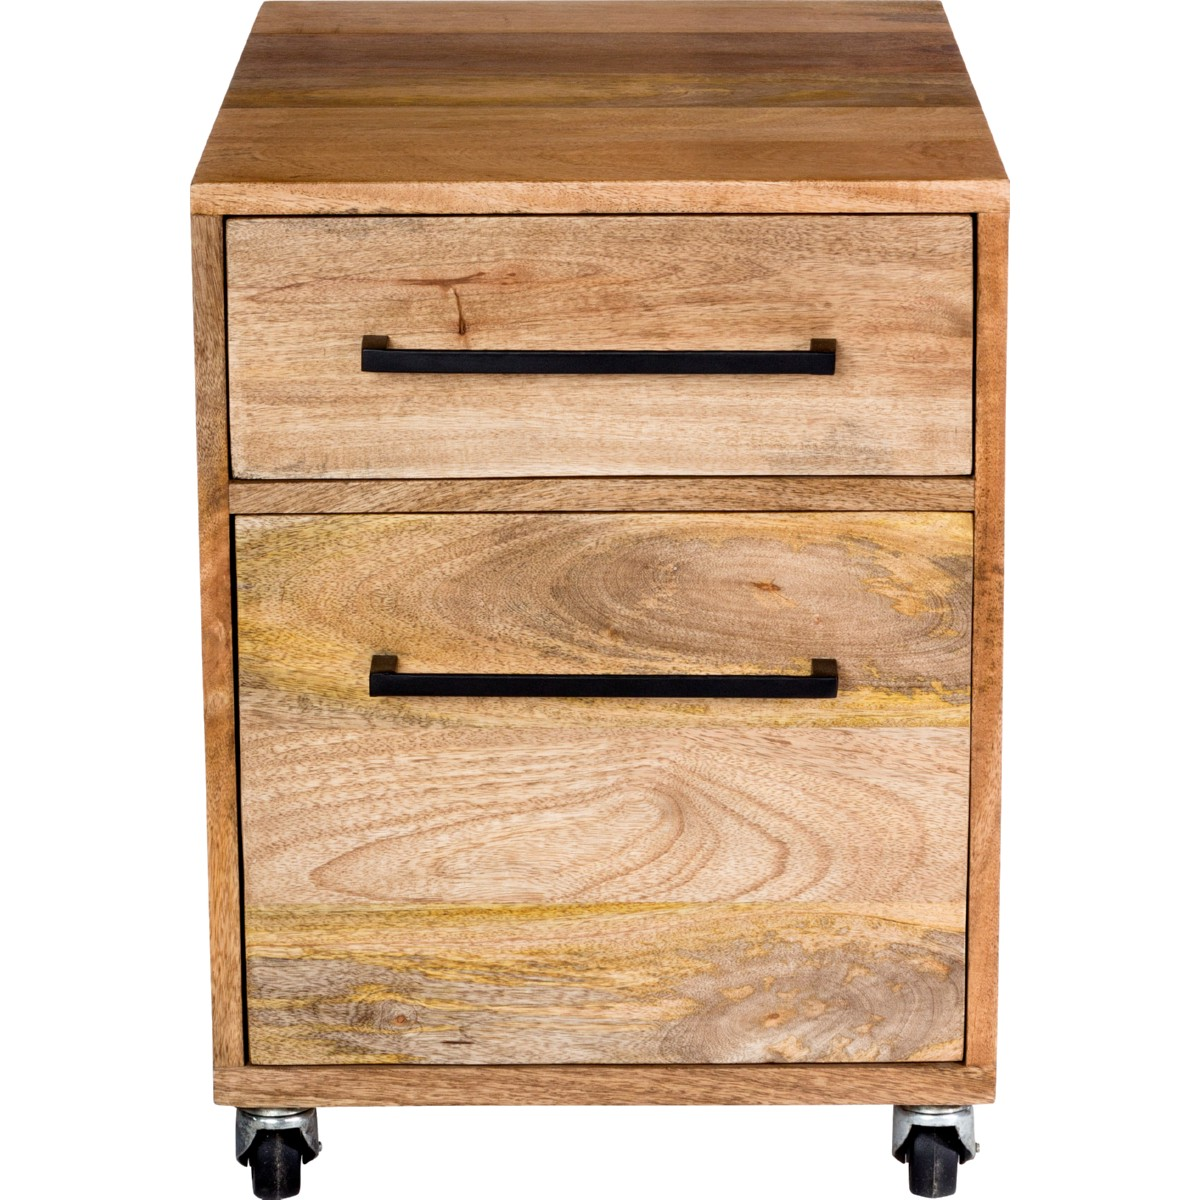 Solid Wood File Cabinet Moe S Home Collection Sr 1031 24 Colvin Mobile File Cabinet Solid Mango Wood Iron Base